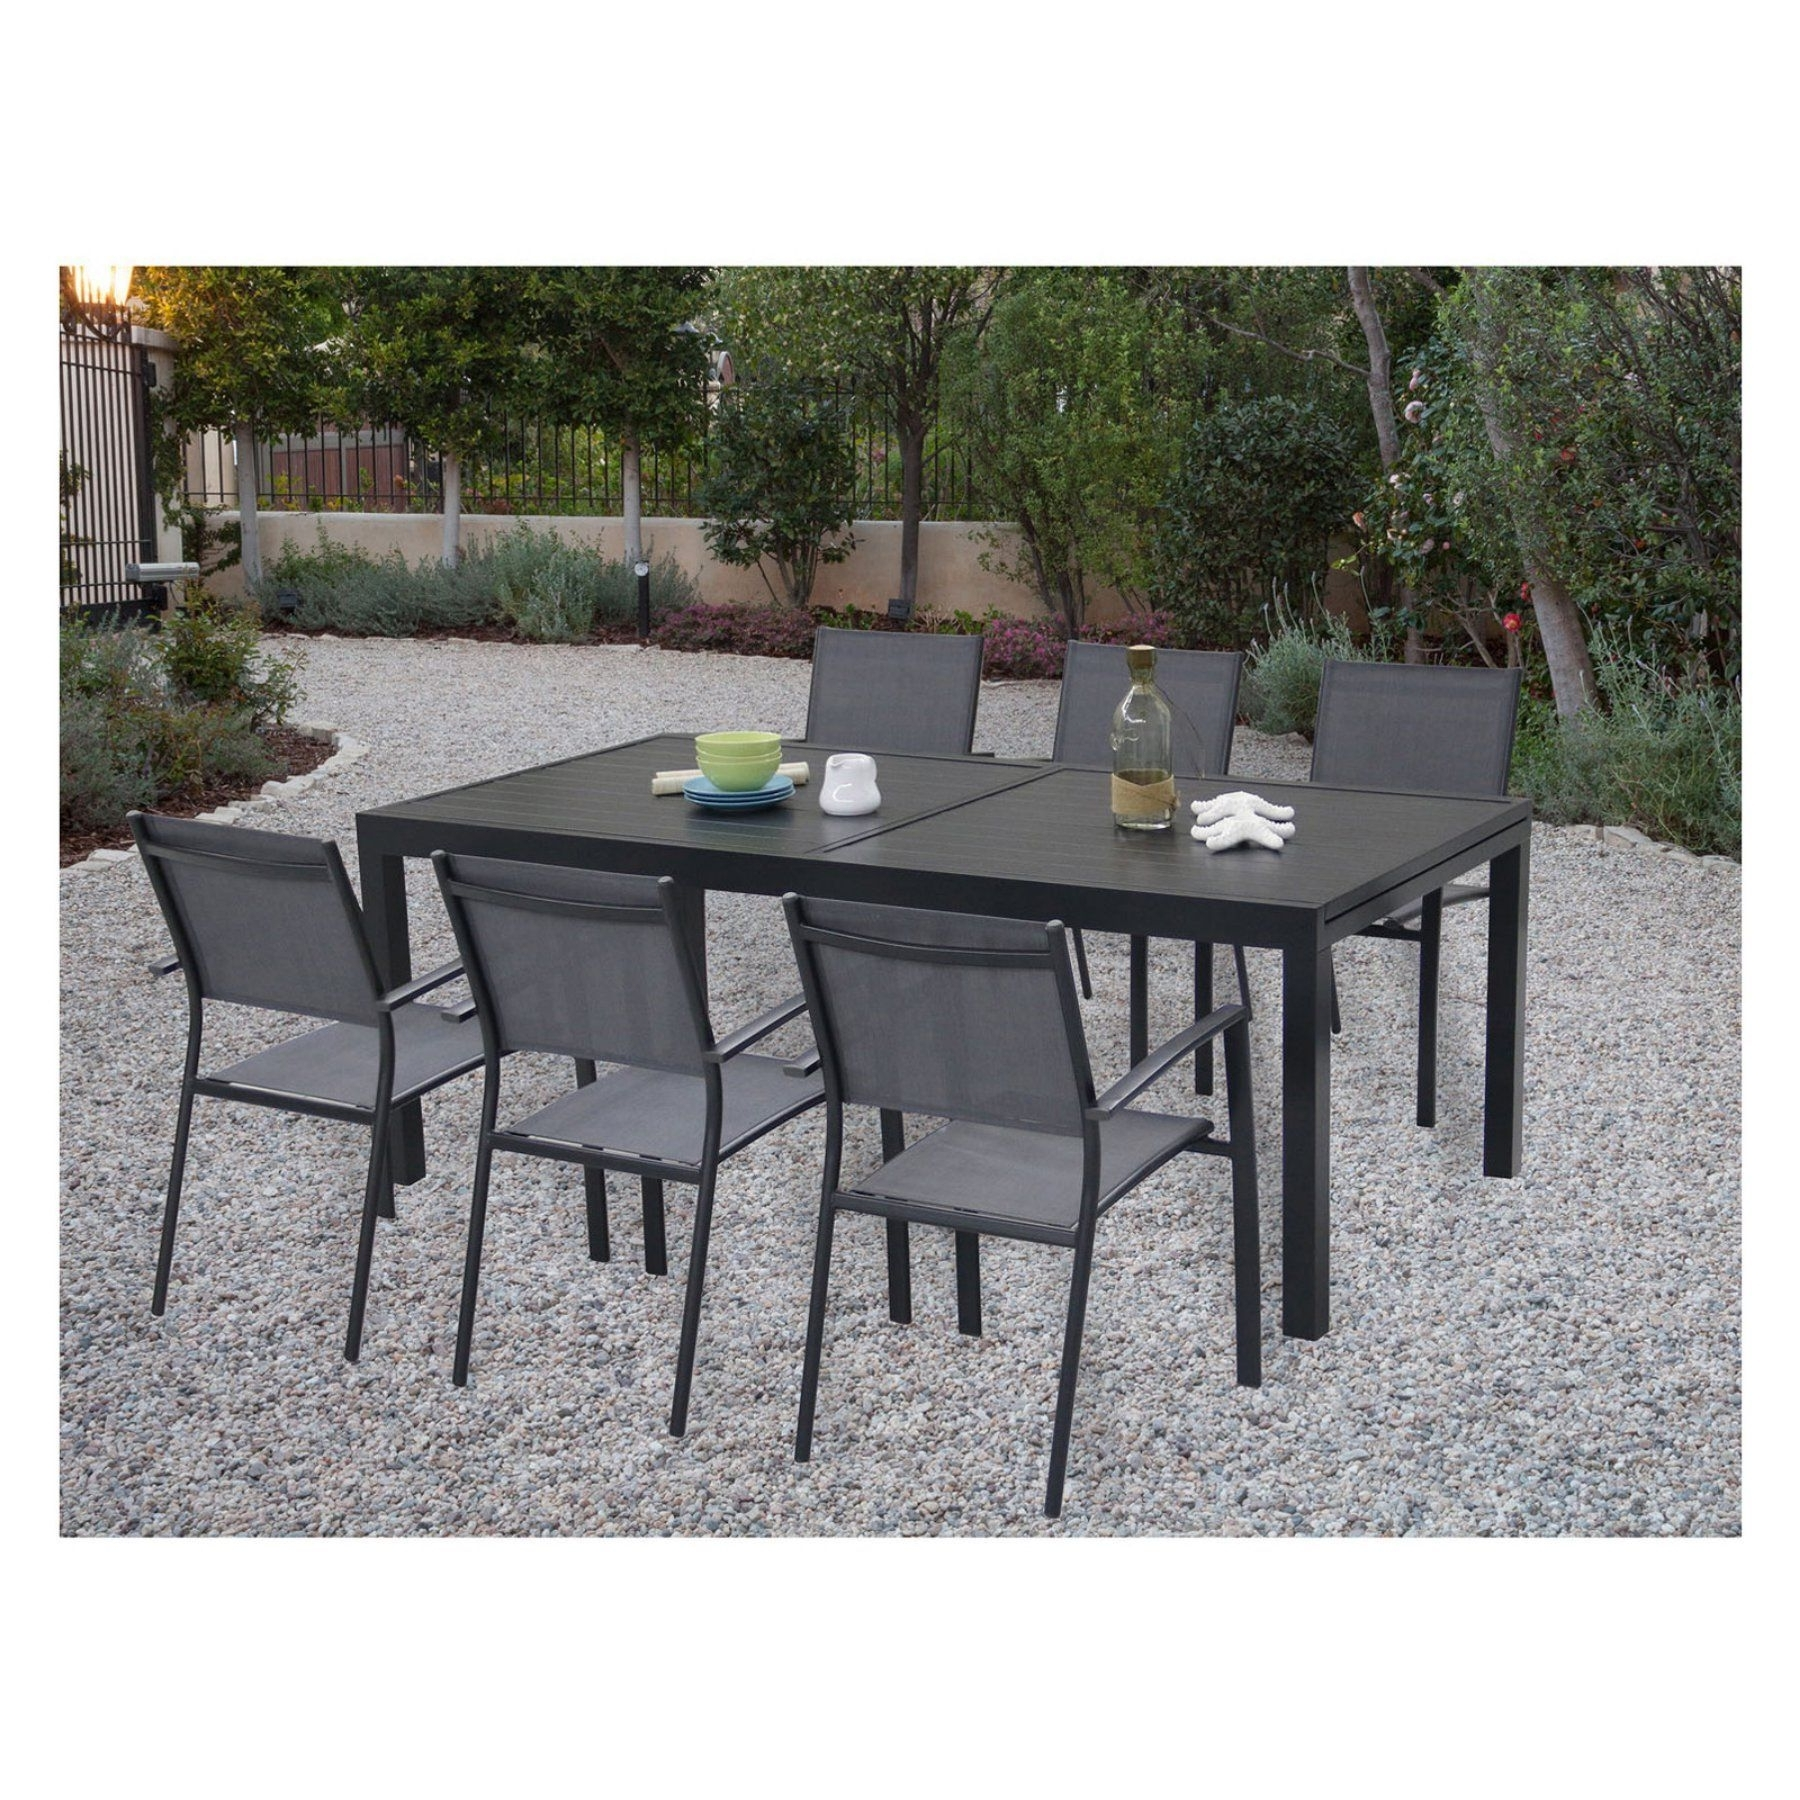 Candice Ii 7 Piece Extension Rectangular Dining Sets With Slat Back Side Chairs Inside Trendy Outdoor Cambridge Nova Aluminum 7 Piece Rectangular Patio Dining Set (Gallery 21 of 25)